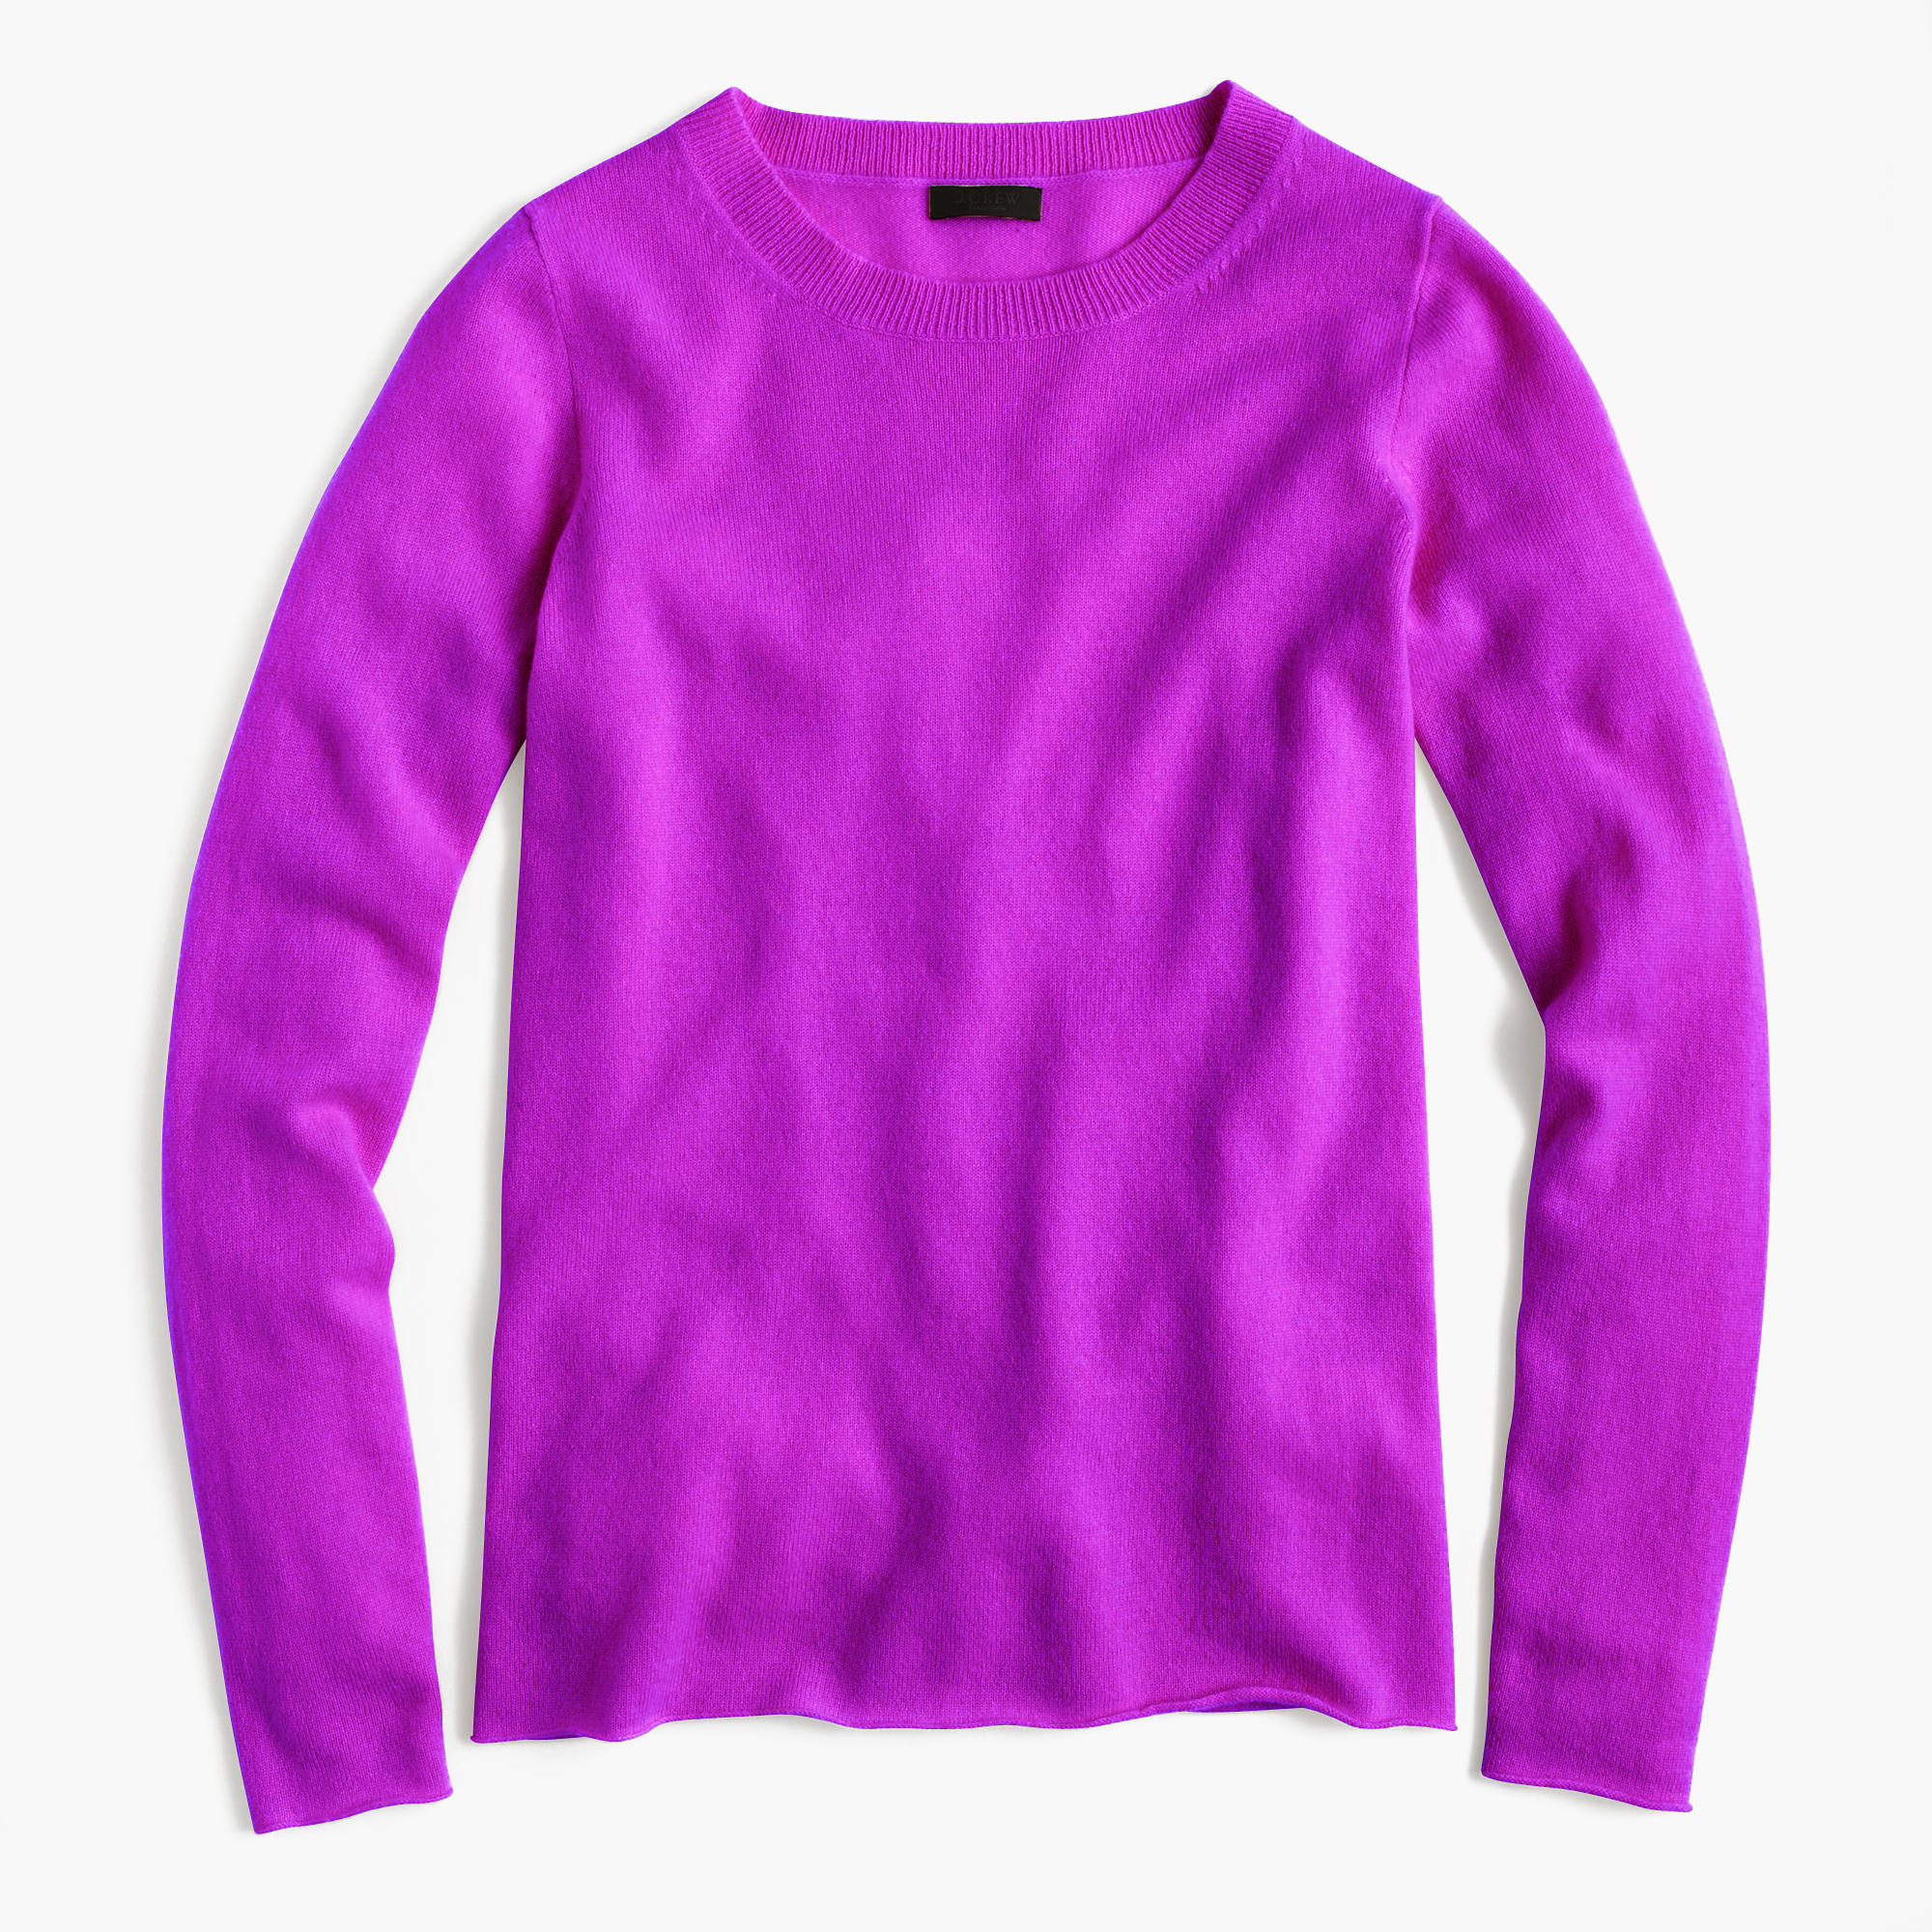 related keywords suggestions for neon purple shirt